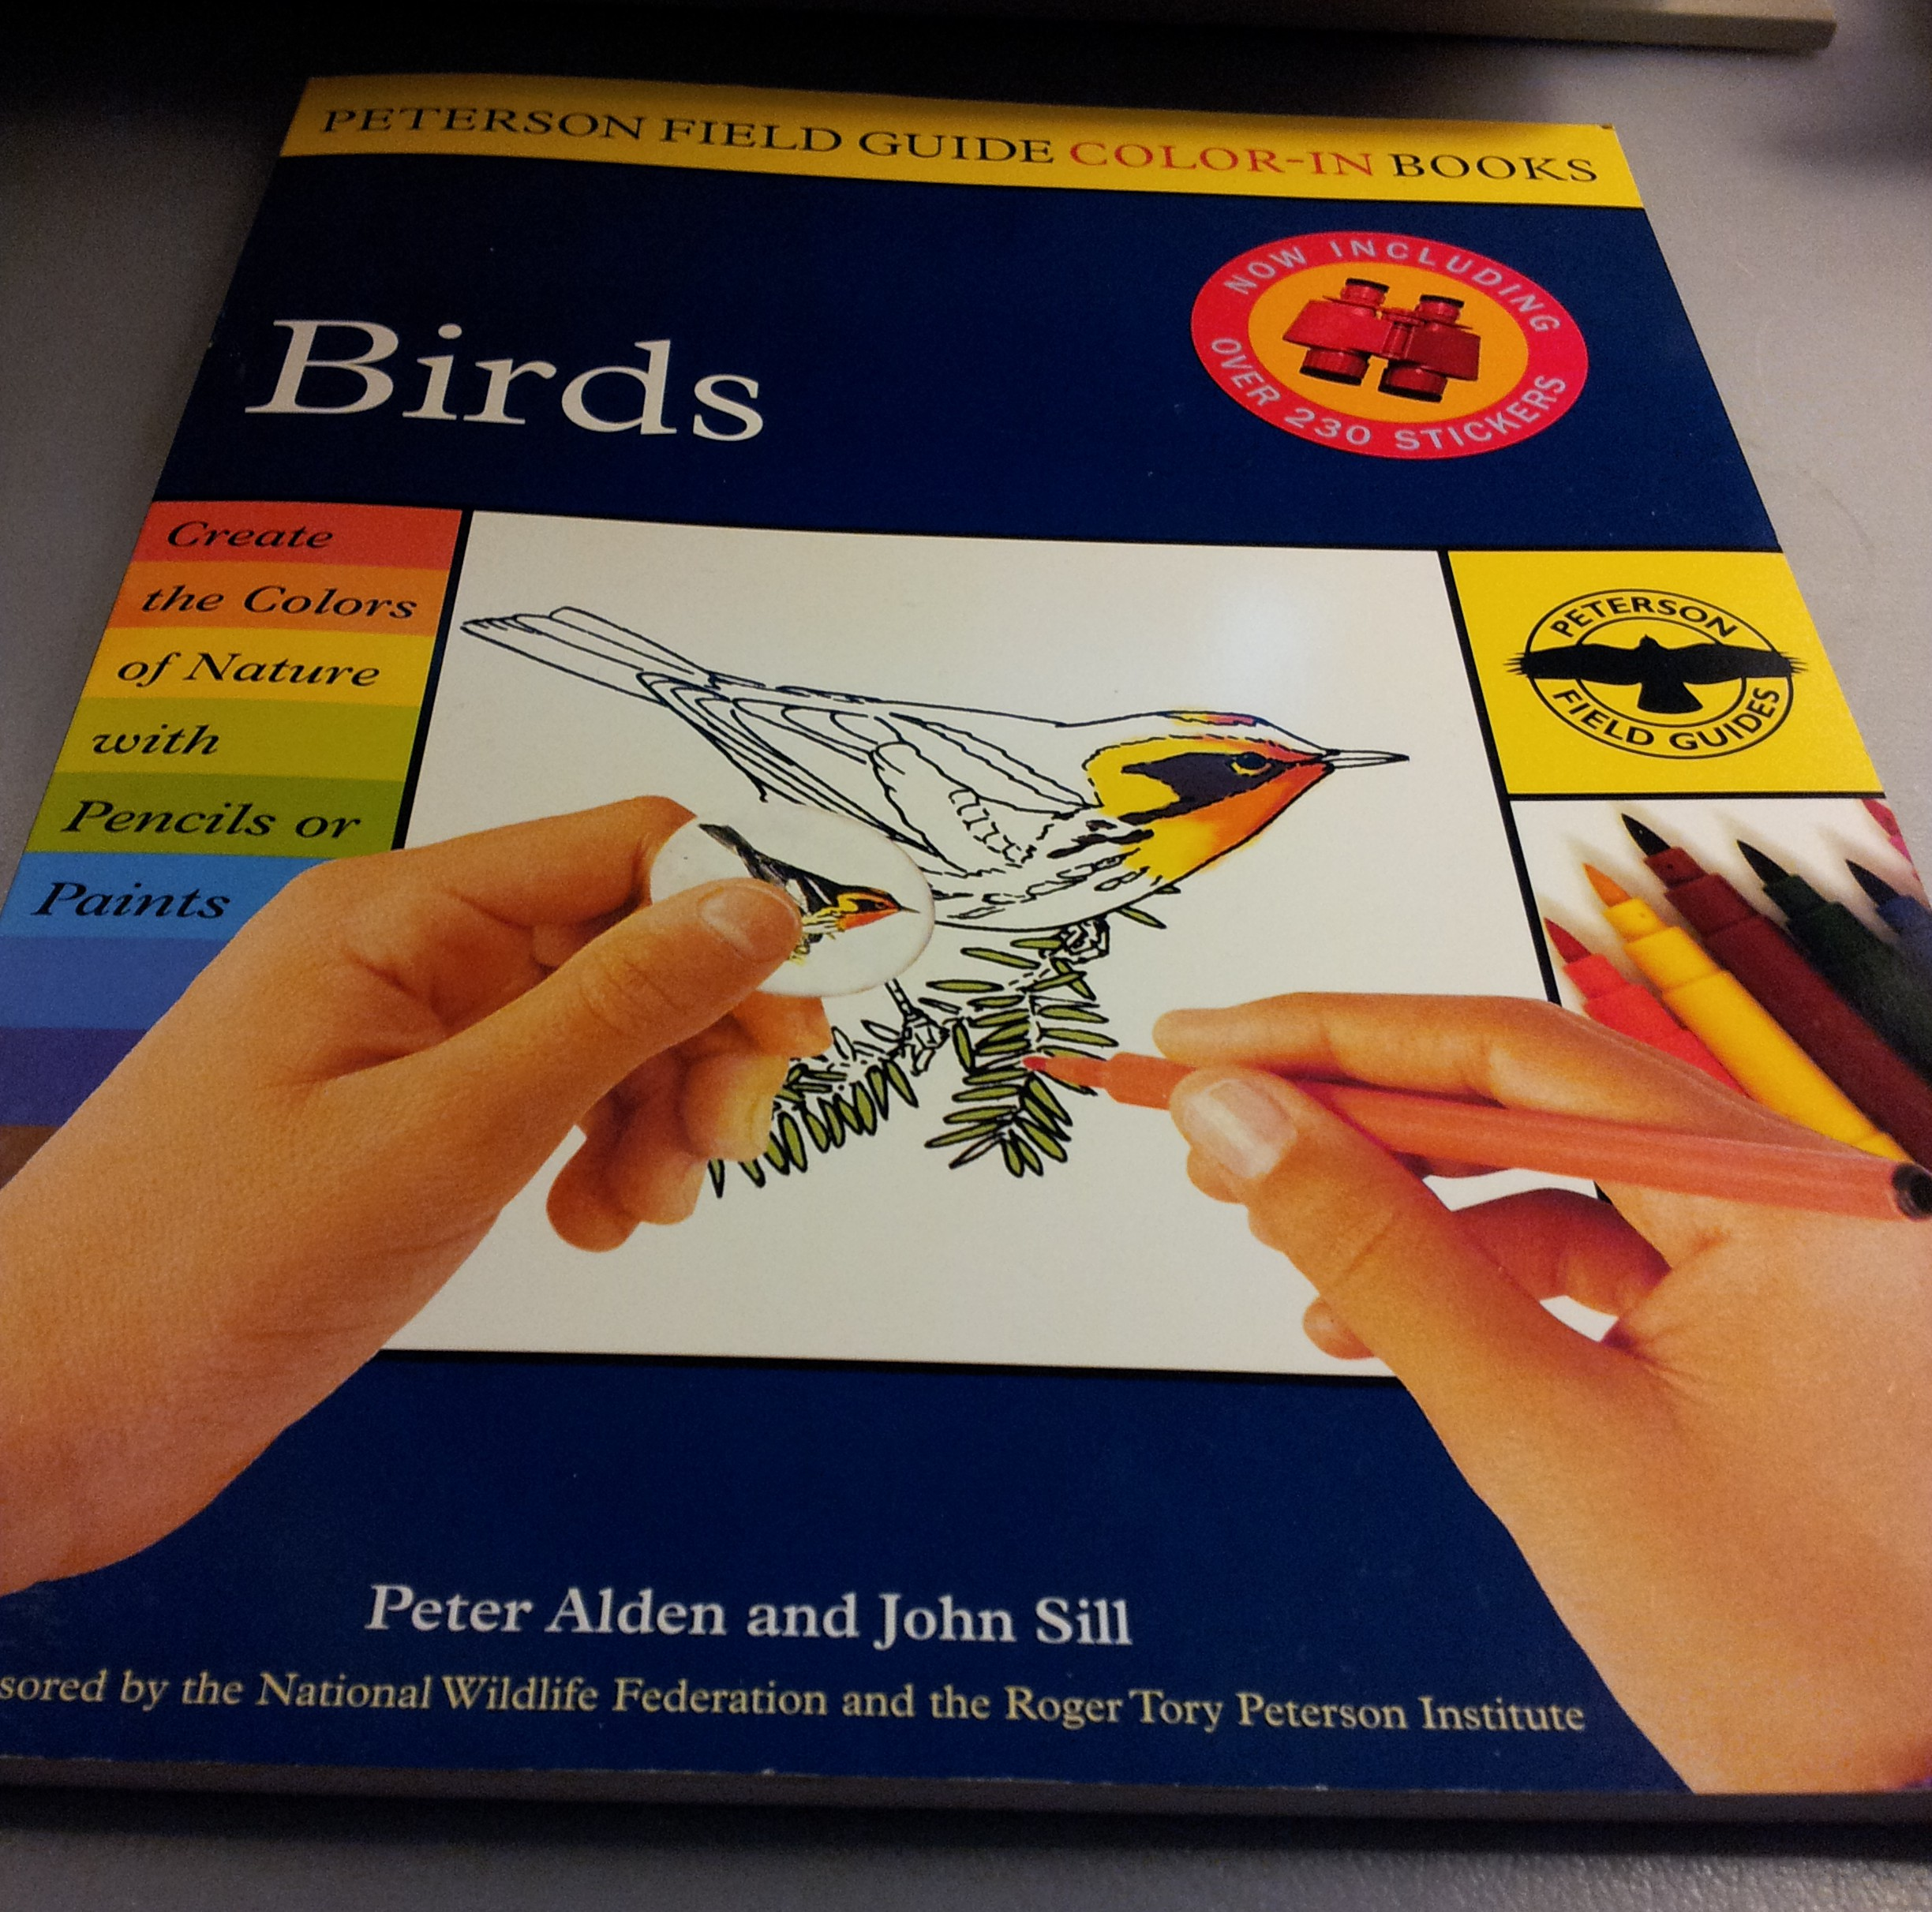 Next Up Is The Peterson Field Guide Color In Book Birds I Was Thrilled To Open This Because Ive Seen Other People Relax While Colouring Adult Books